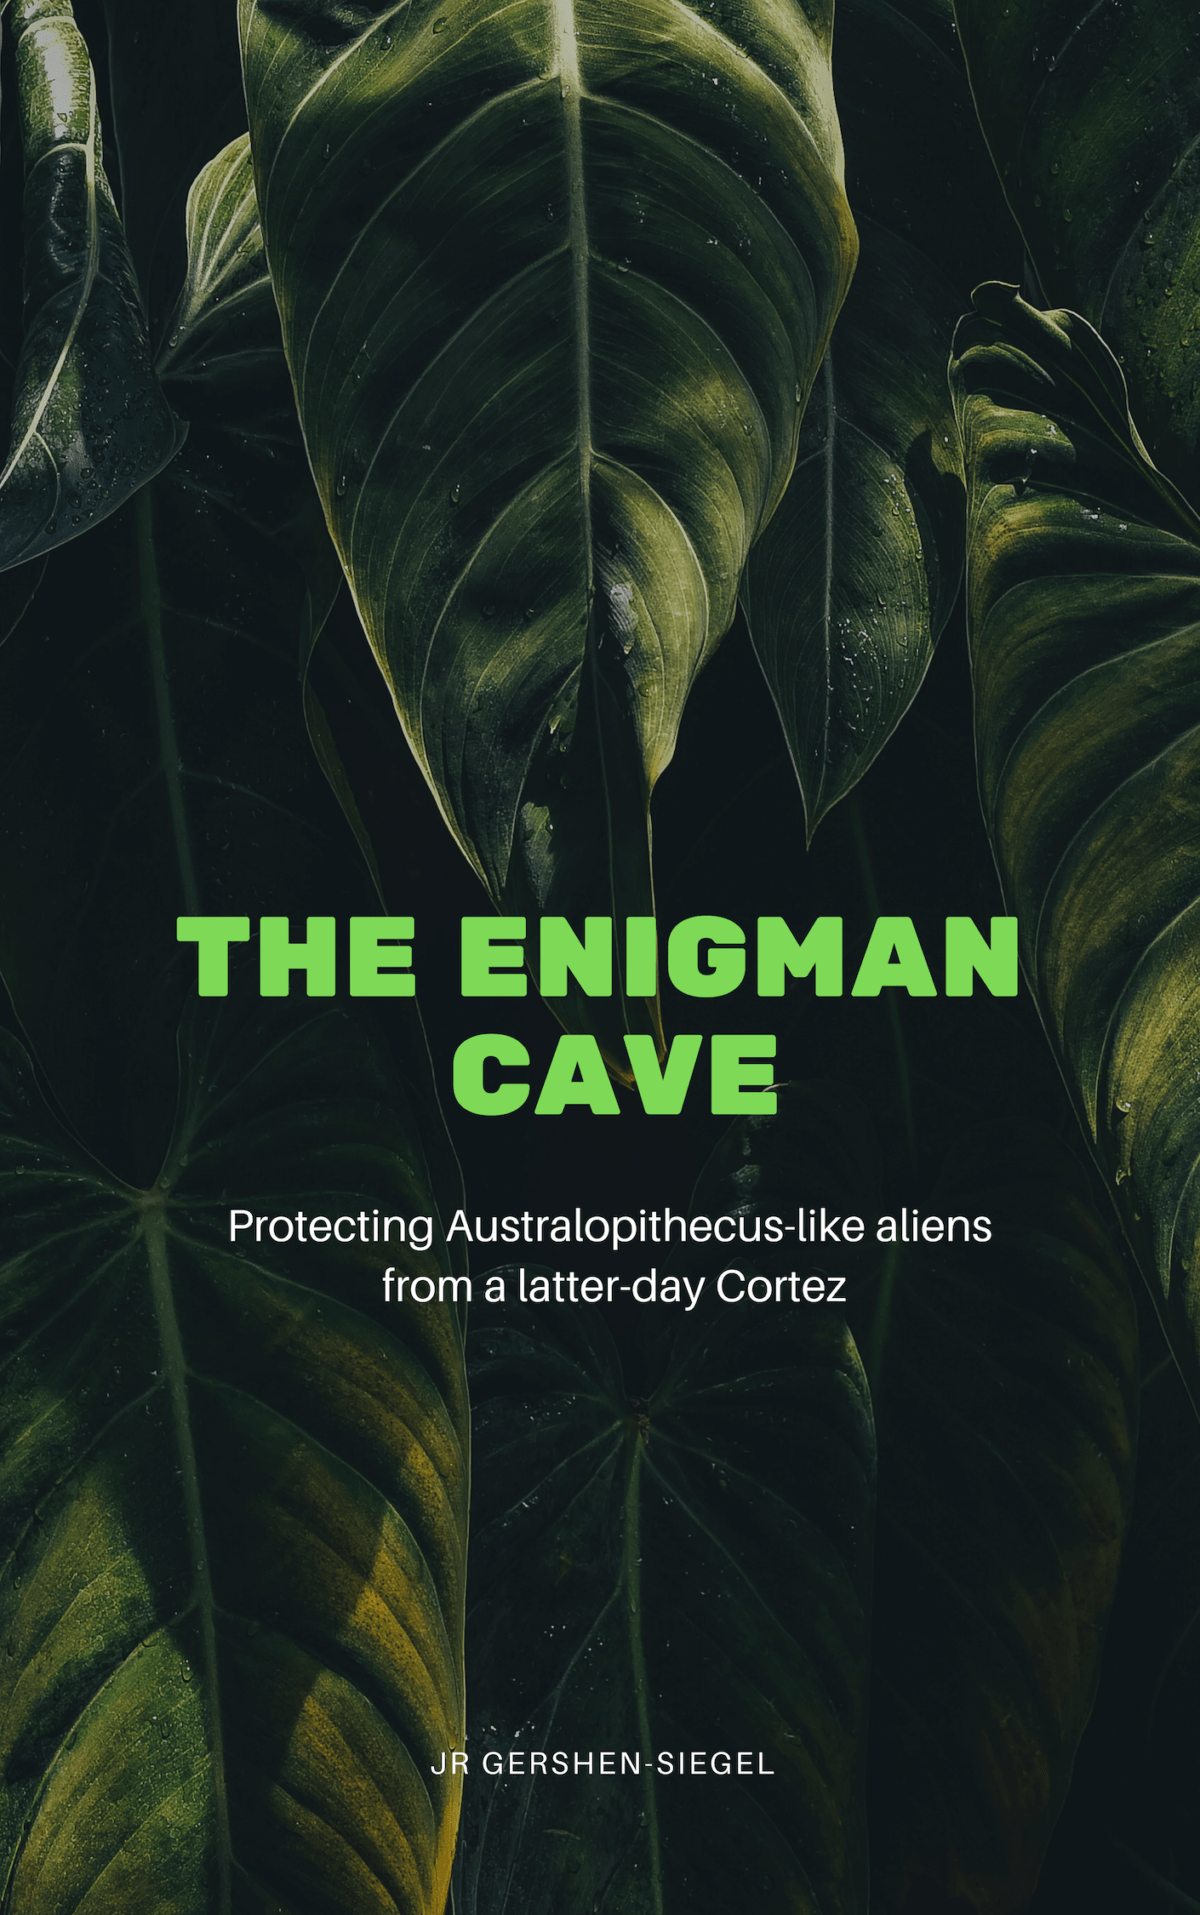 The Enigman Cave